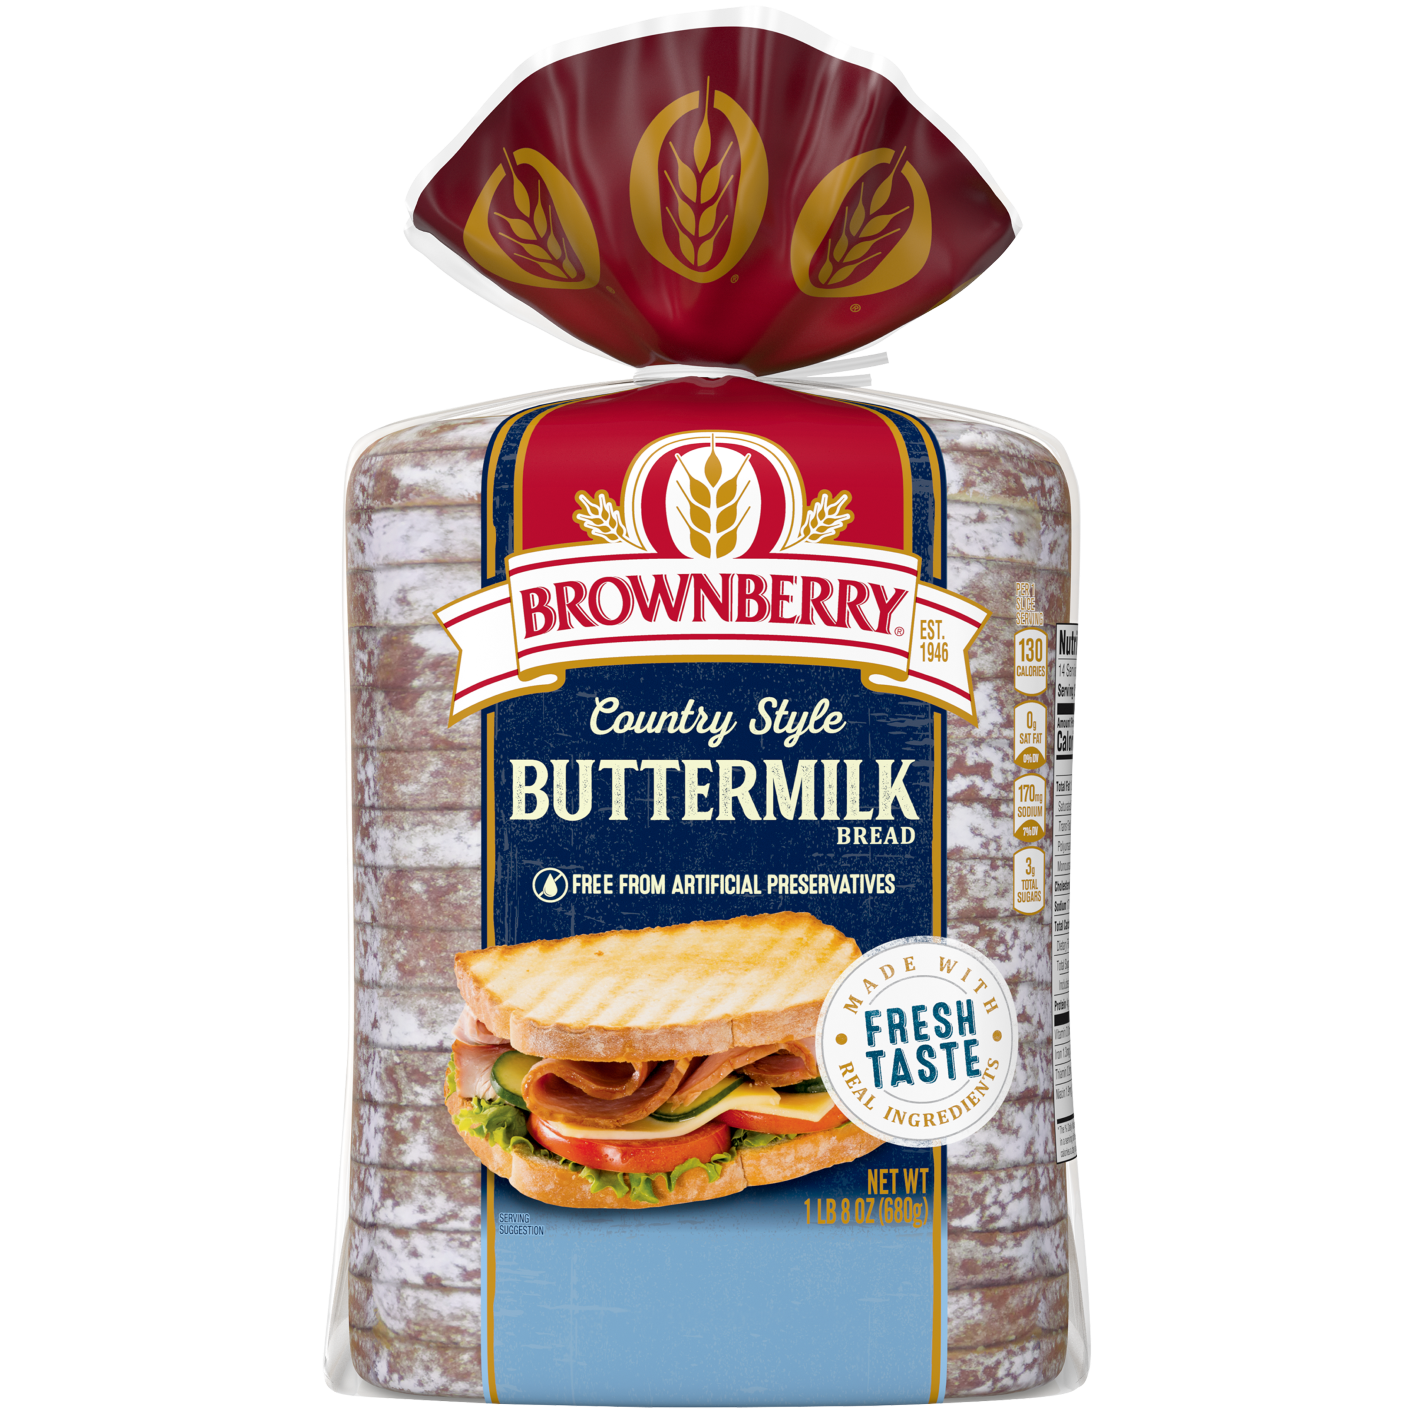 Brownberry Country Style Buttermilk Bread 24oz Packaging